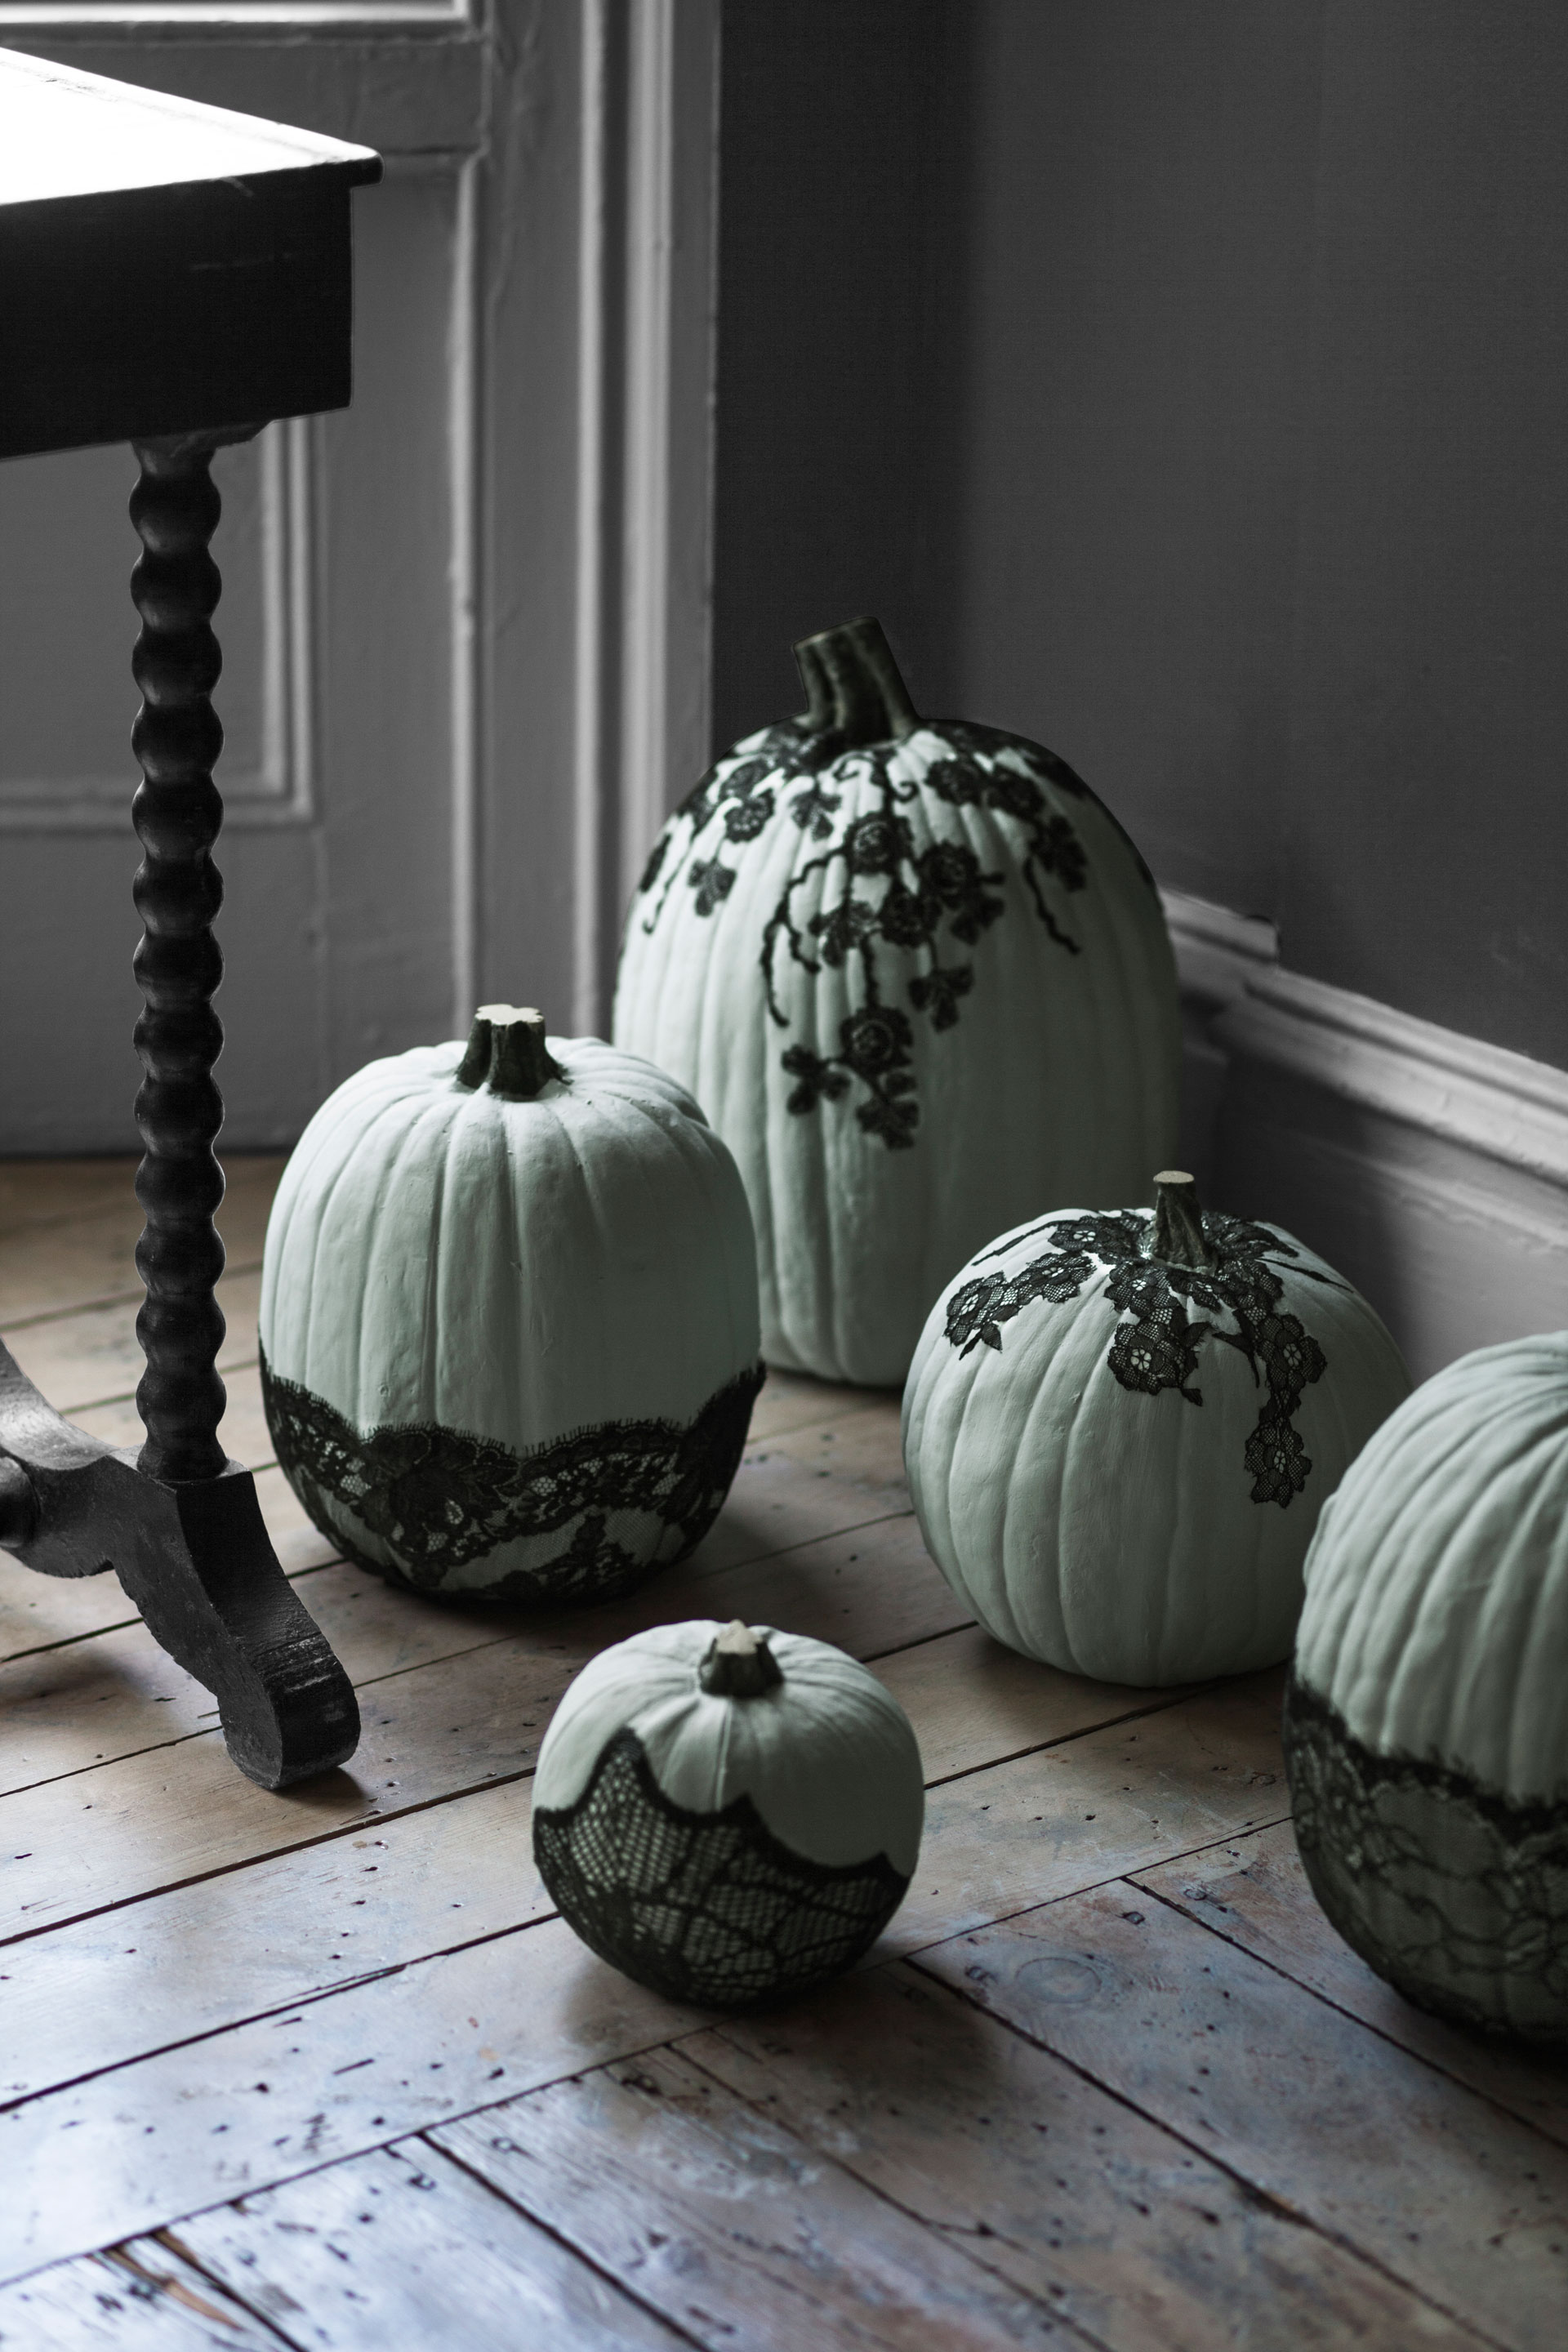 Living Room Decorating Photos 77 cool pumpkin decorating ideas easy halloween decorations and crafts 2016